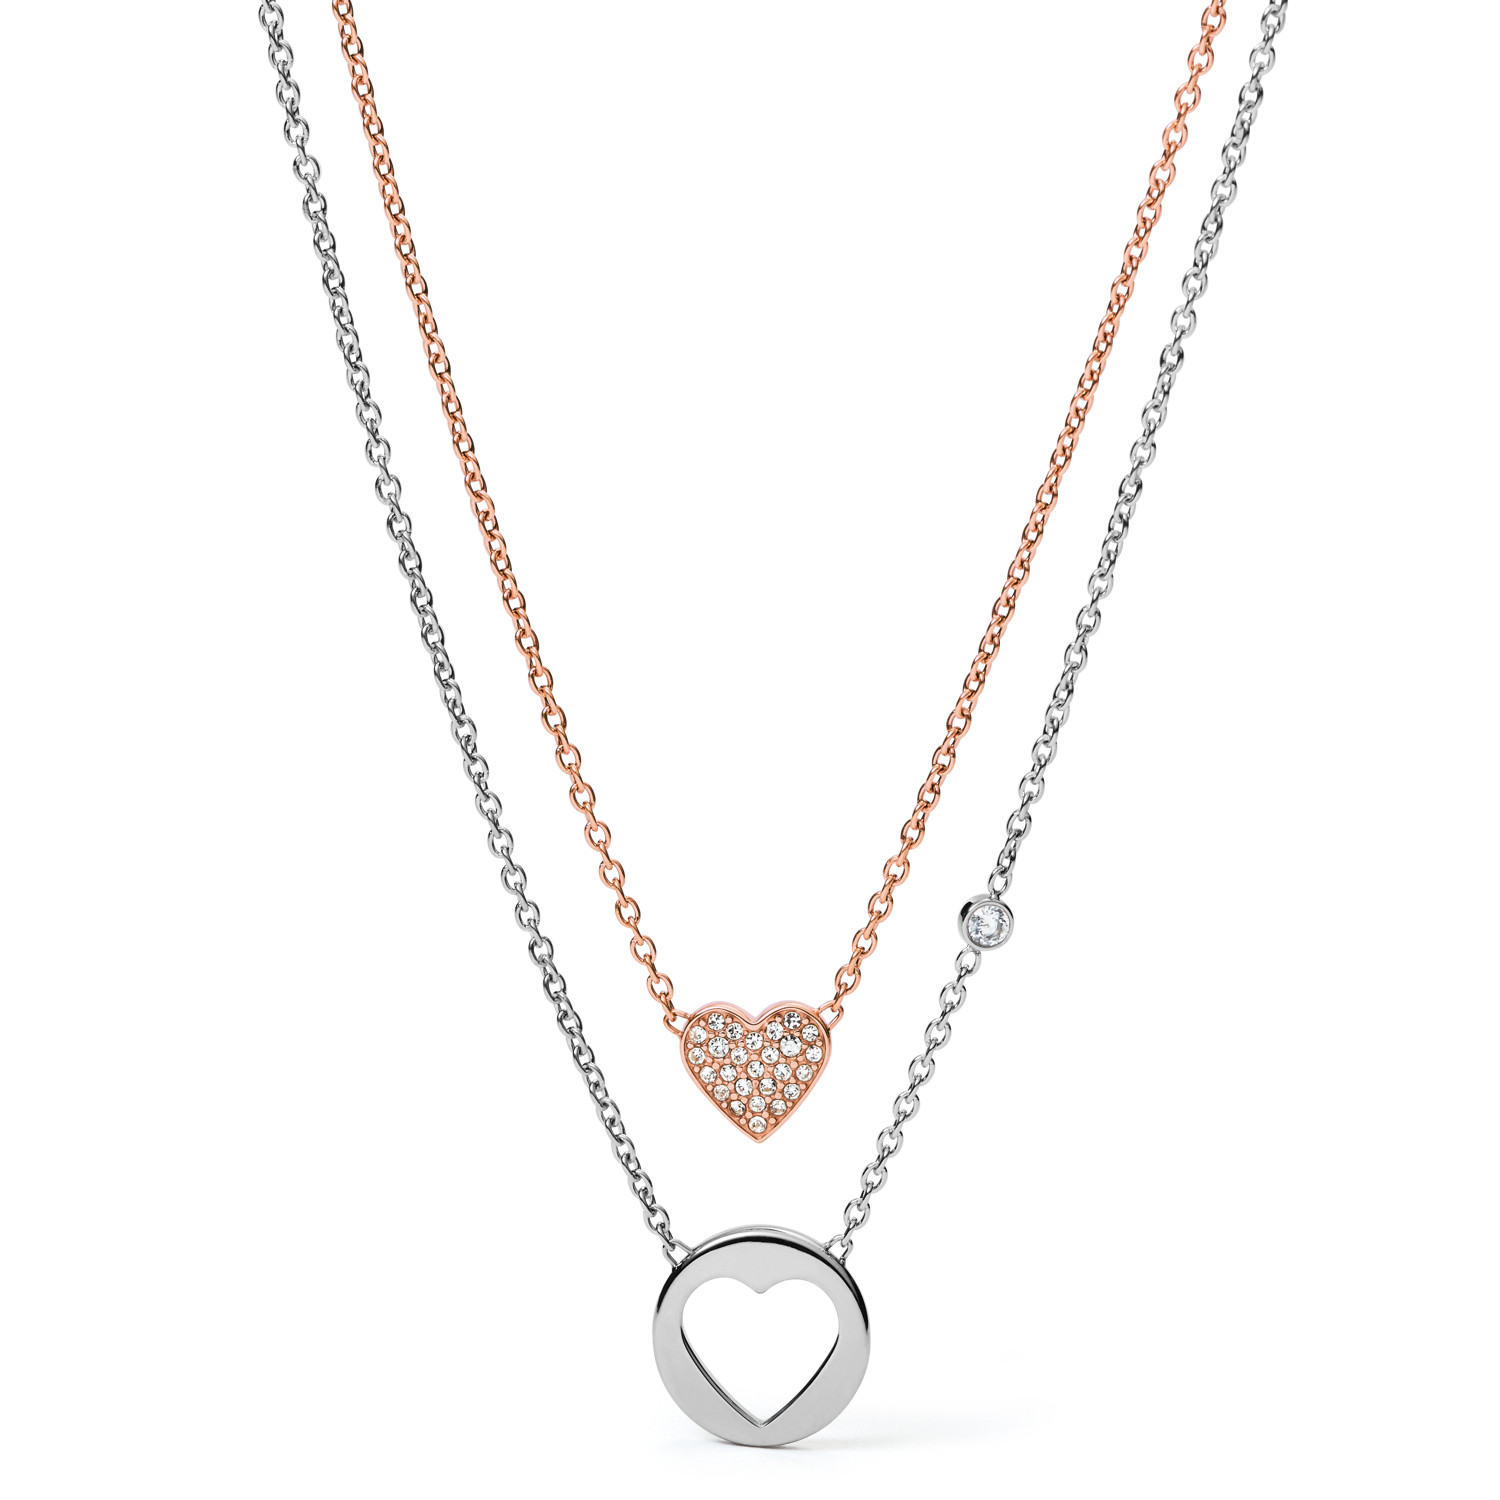 necklace diamond lorelei heart jewellery interlocking jewelry